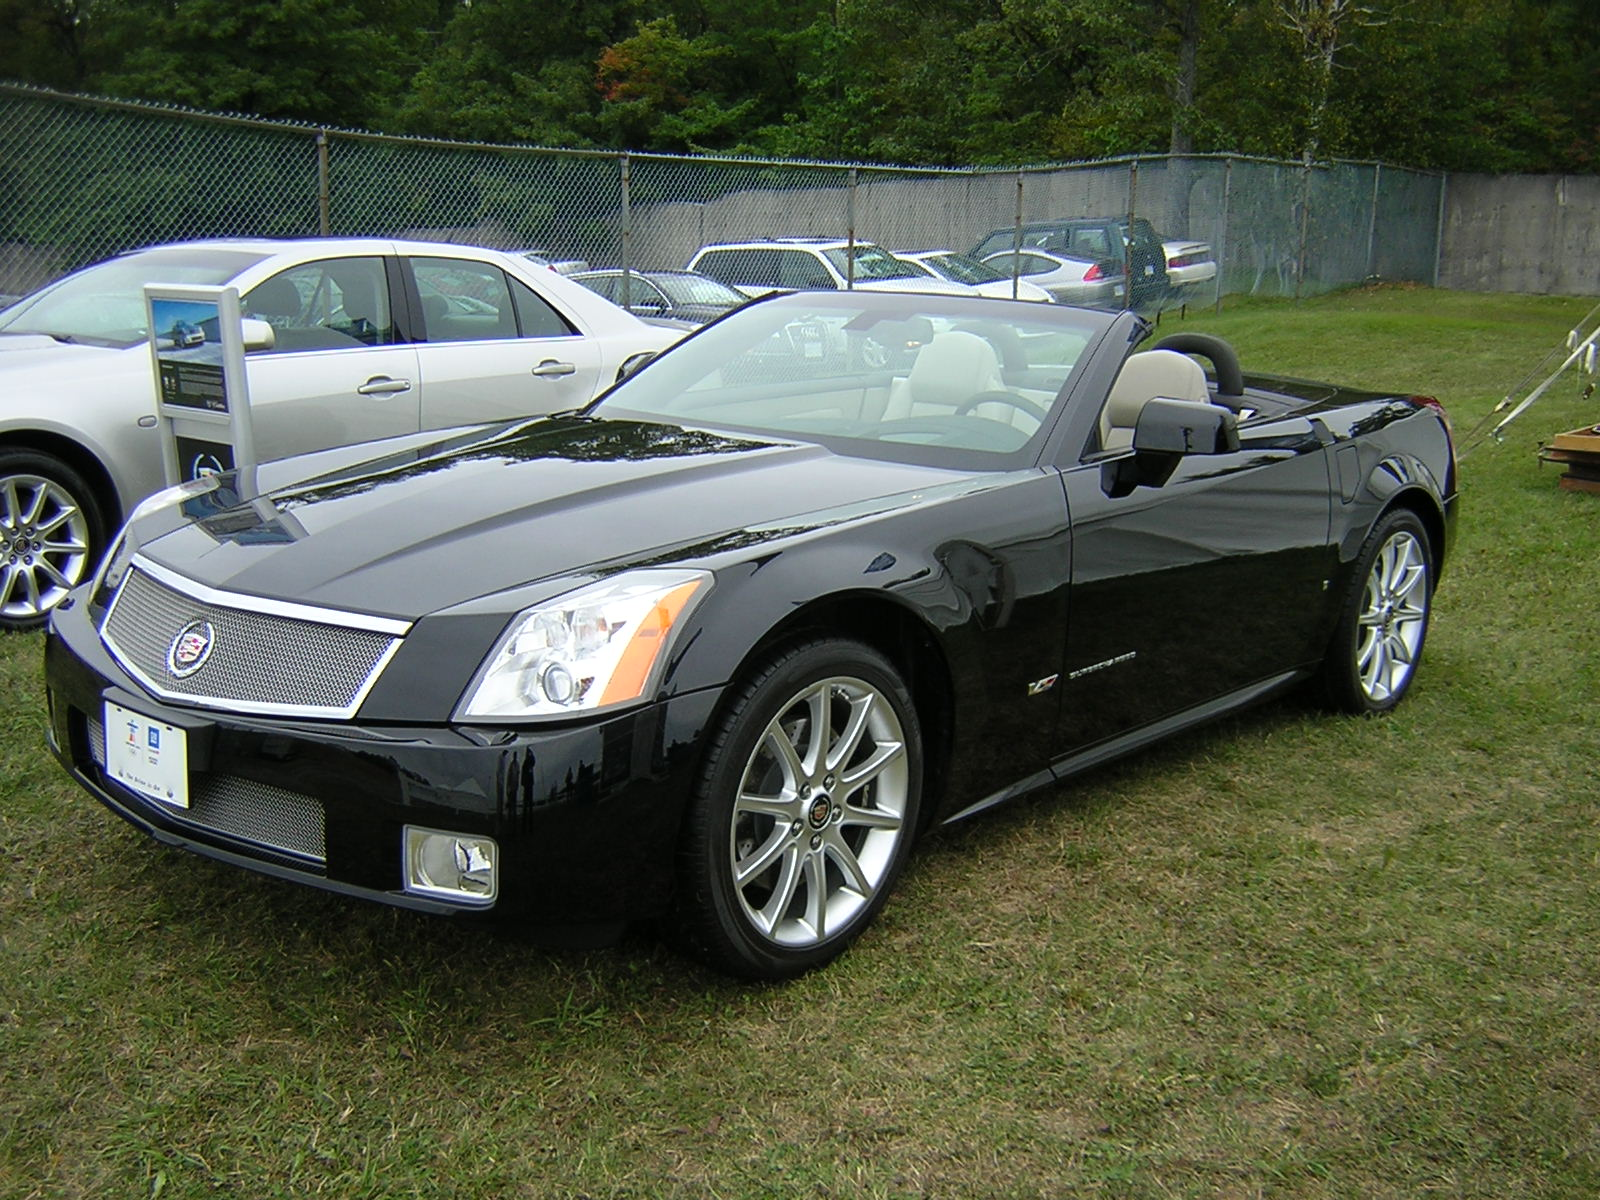 The Overlooked Performance Car The Cadillac Xlr